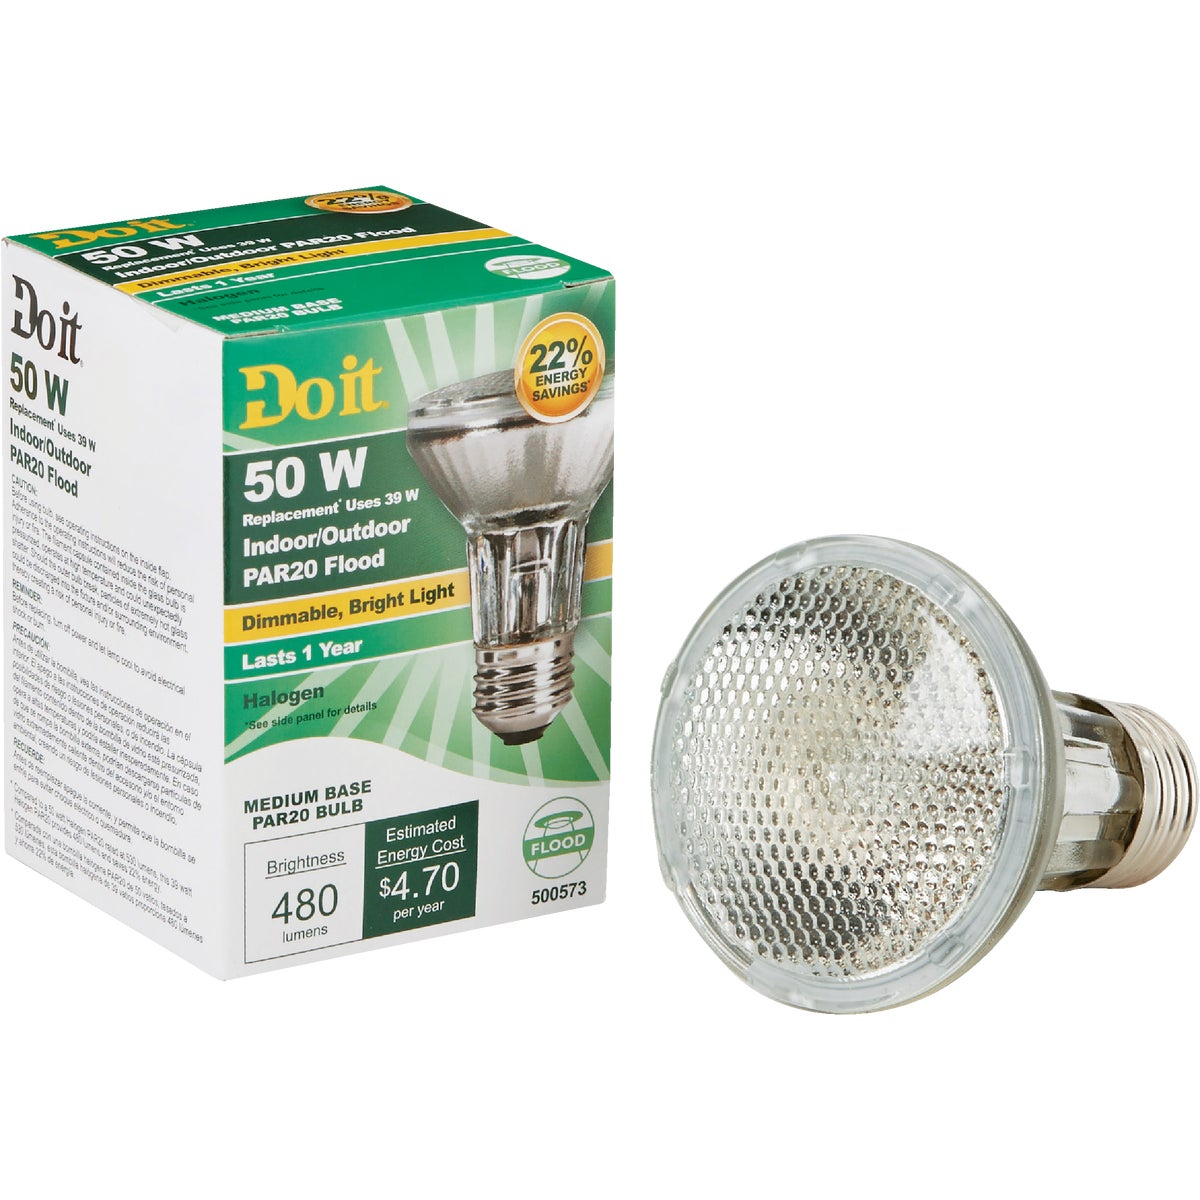 38W PAR20 HAL FLOOD BULB - 90828 by G E Private Label